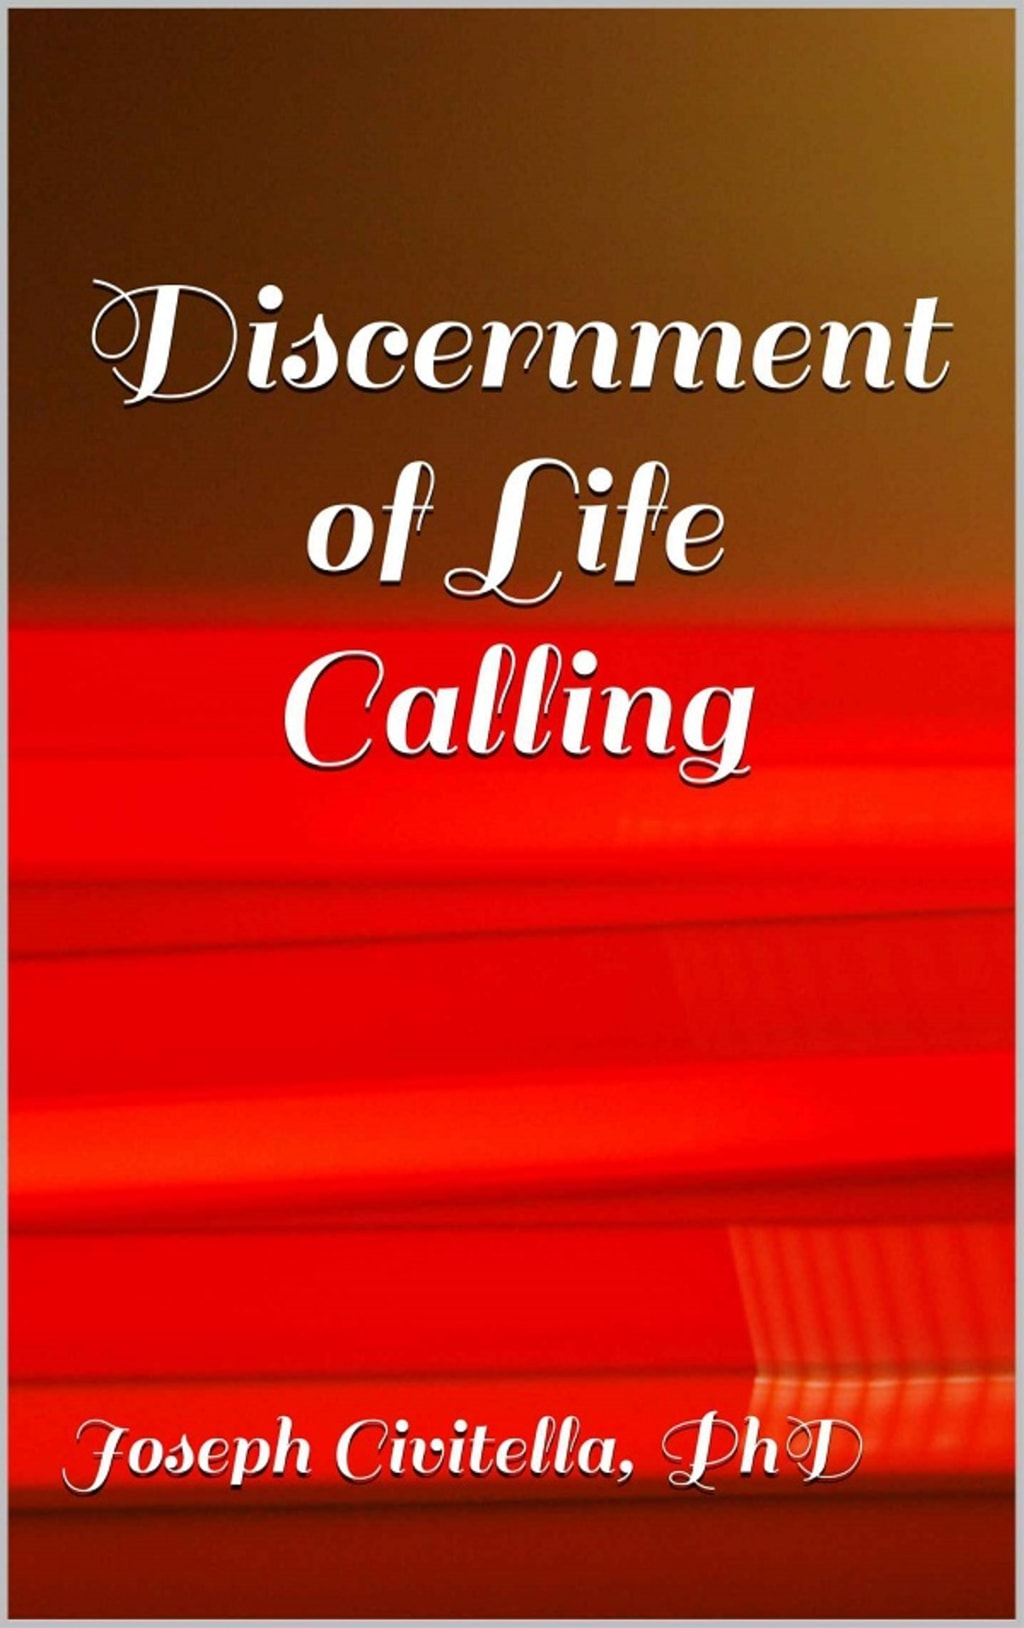 Discernment of Life Calling — Excerpt 11